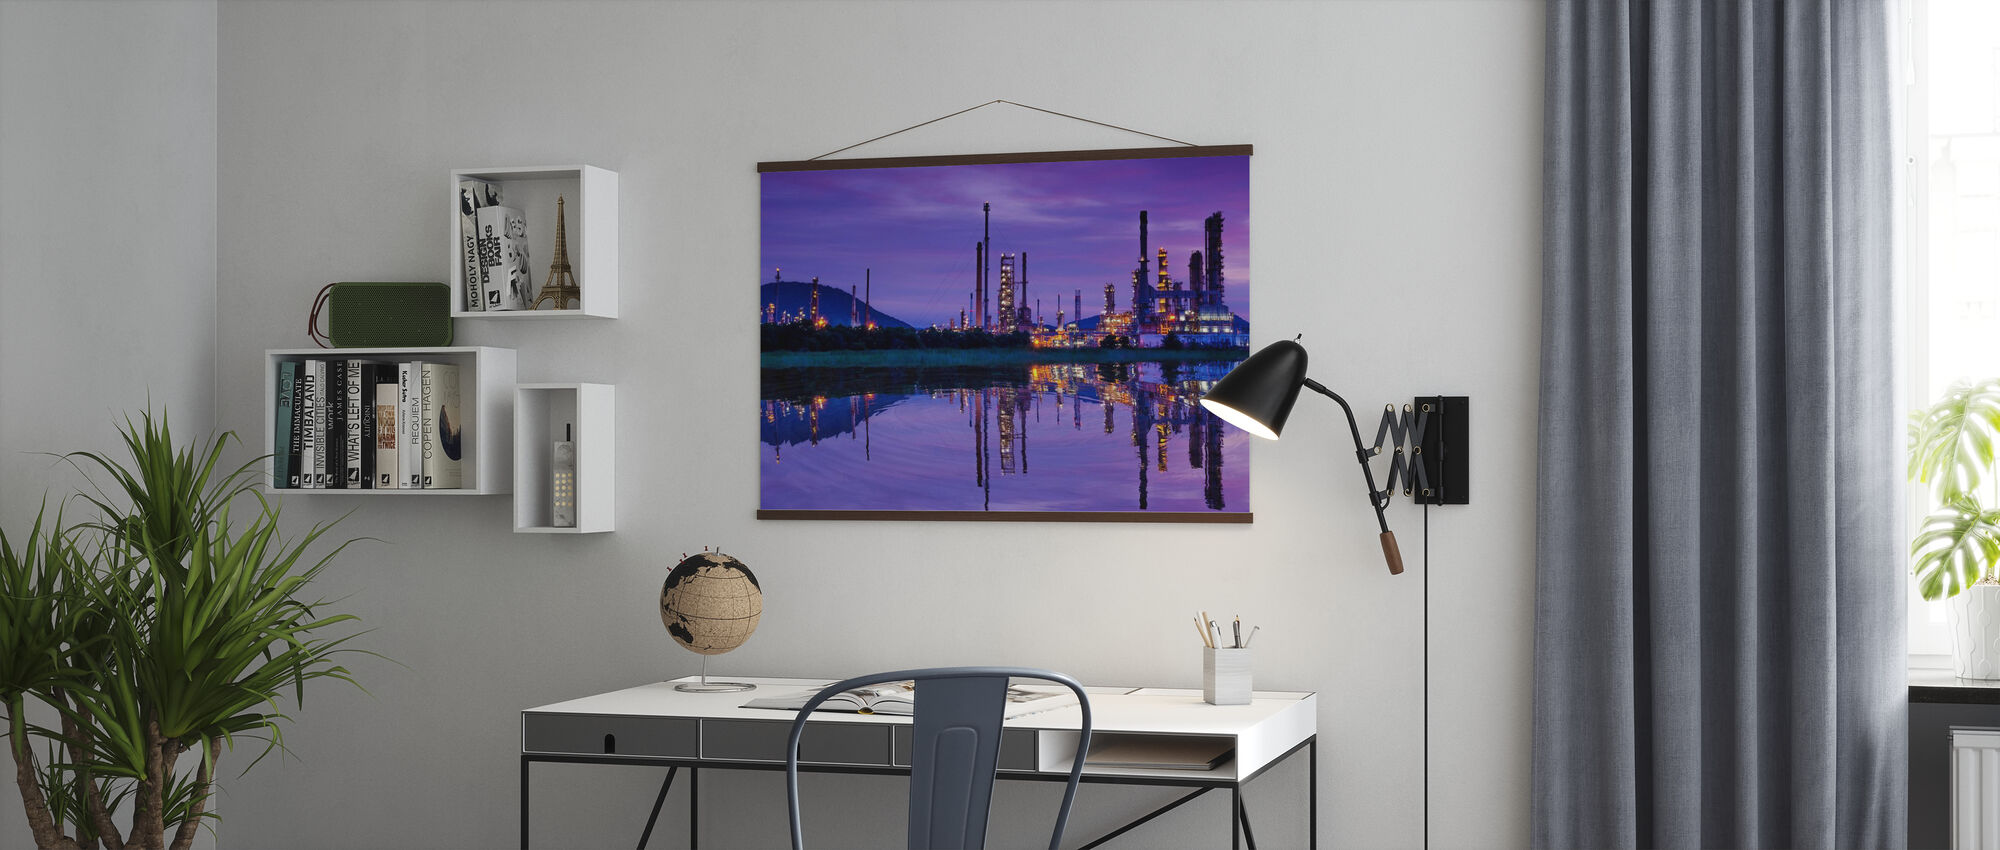 Petrochemical Industry - Poster - Office